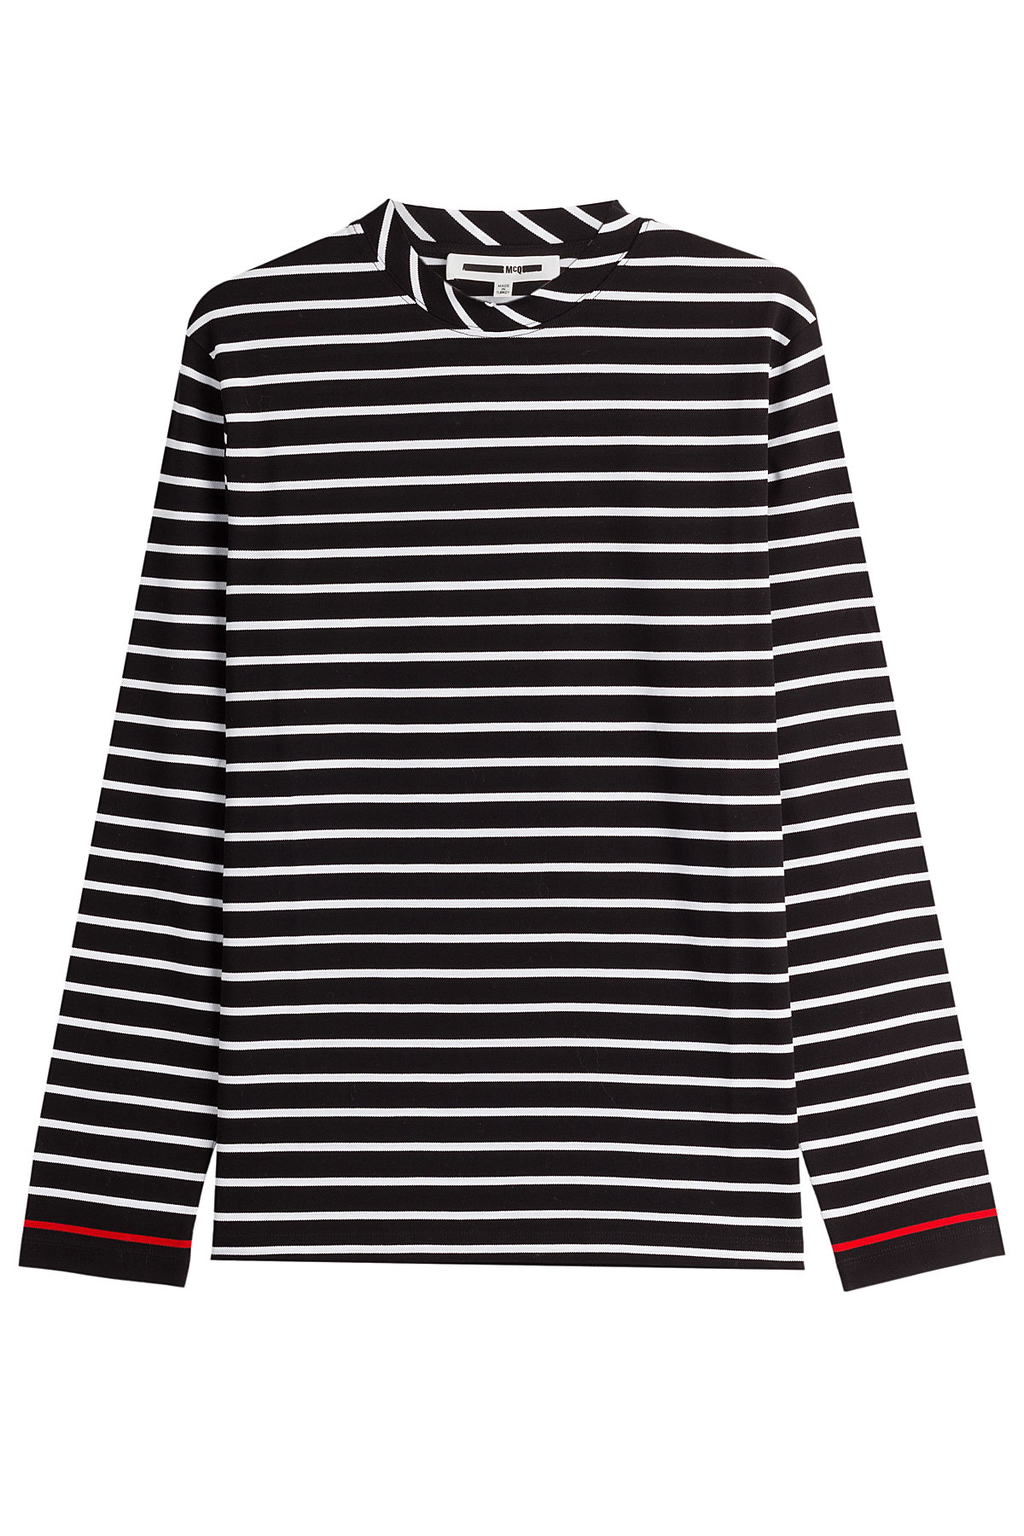 Striped Cotton Top Black - neckline: round neck; pattern: horizontal stripes; secondary colour: white; predominant colour: black; occasions: casual, creative work; length: standard; style: top; fibres: cotton - 100%; fit: straight cut; sleeve length: long sleeve; sleeve style: standard; pattern type: fabric; texture group: jersey - stretchy/drapey; pattern size: big & busy (top); season: a/w 2016